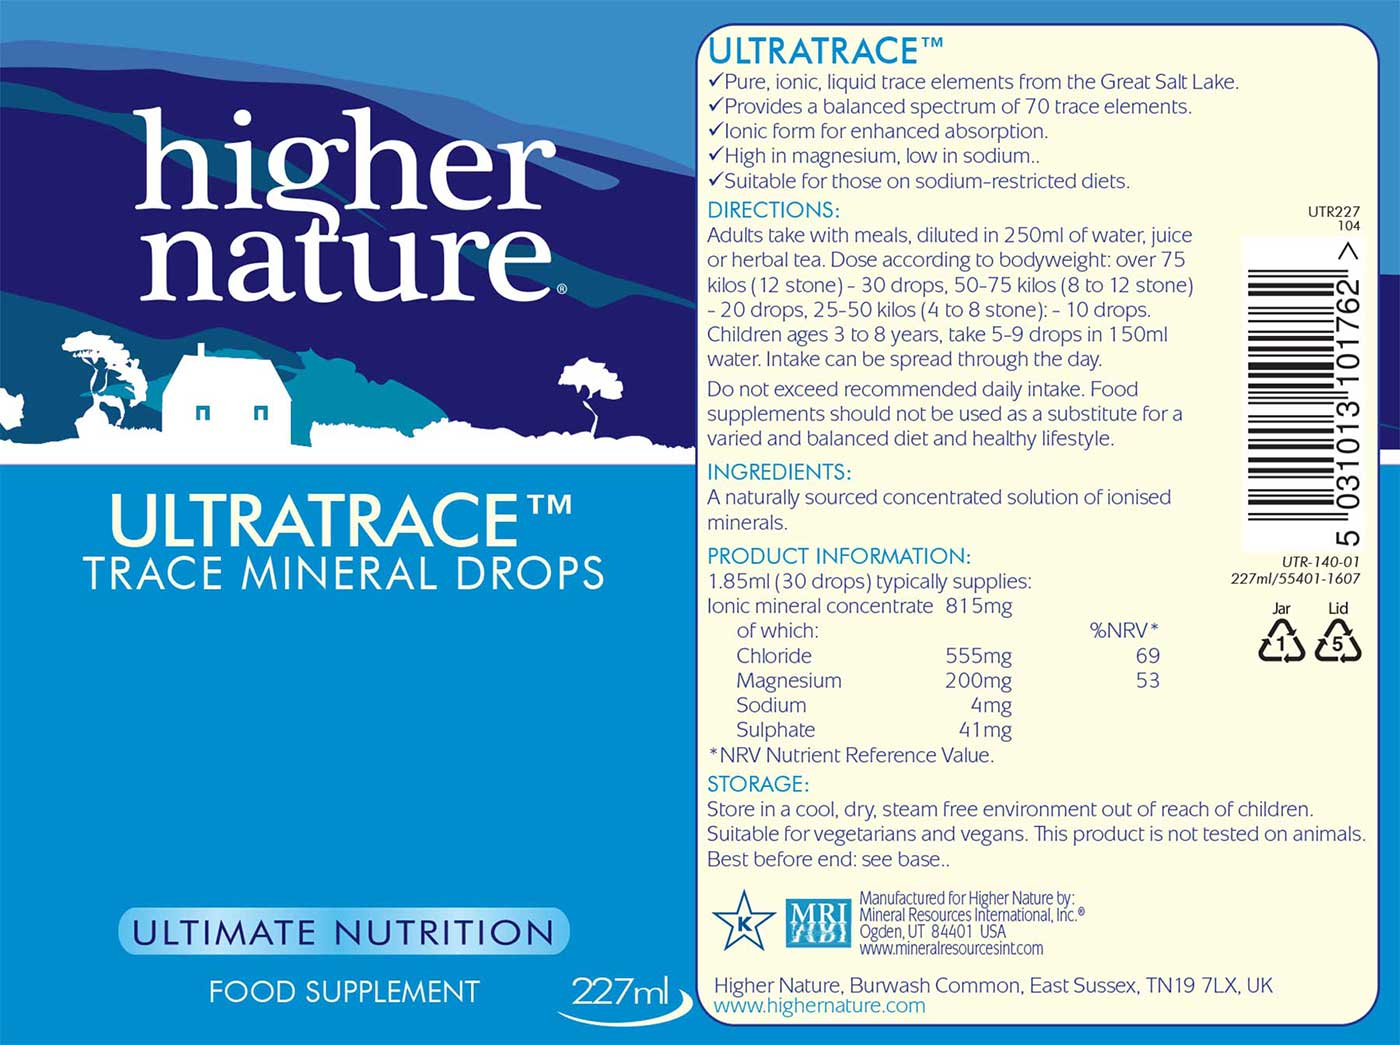 Ultratrace Trace Minerals Details